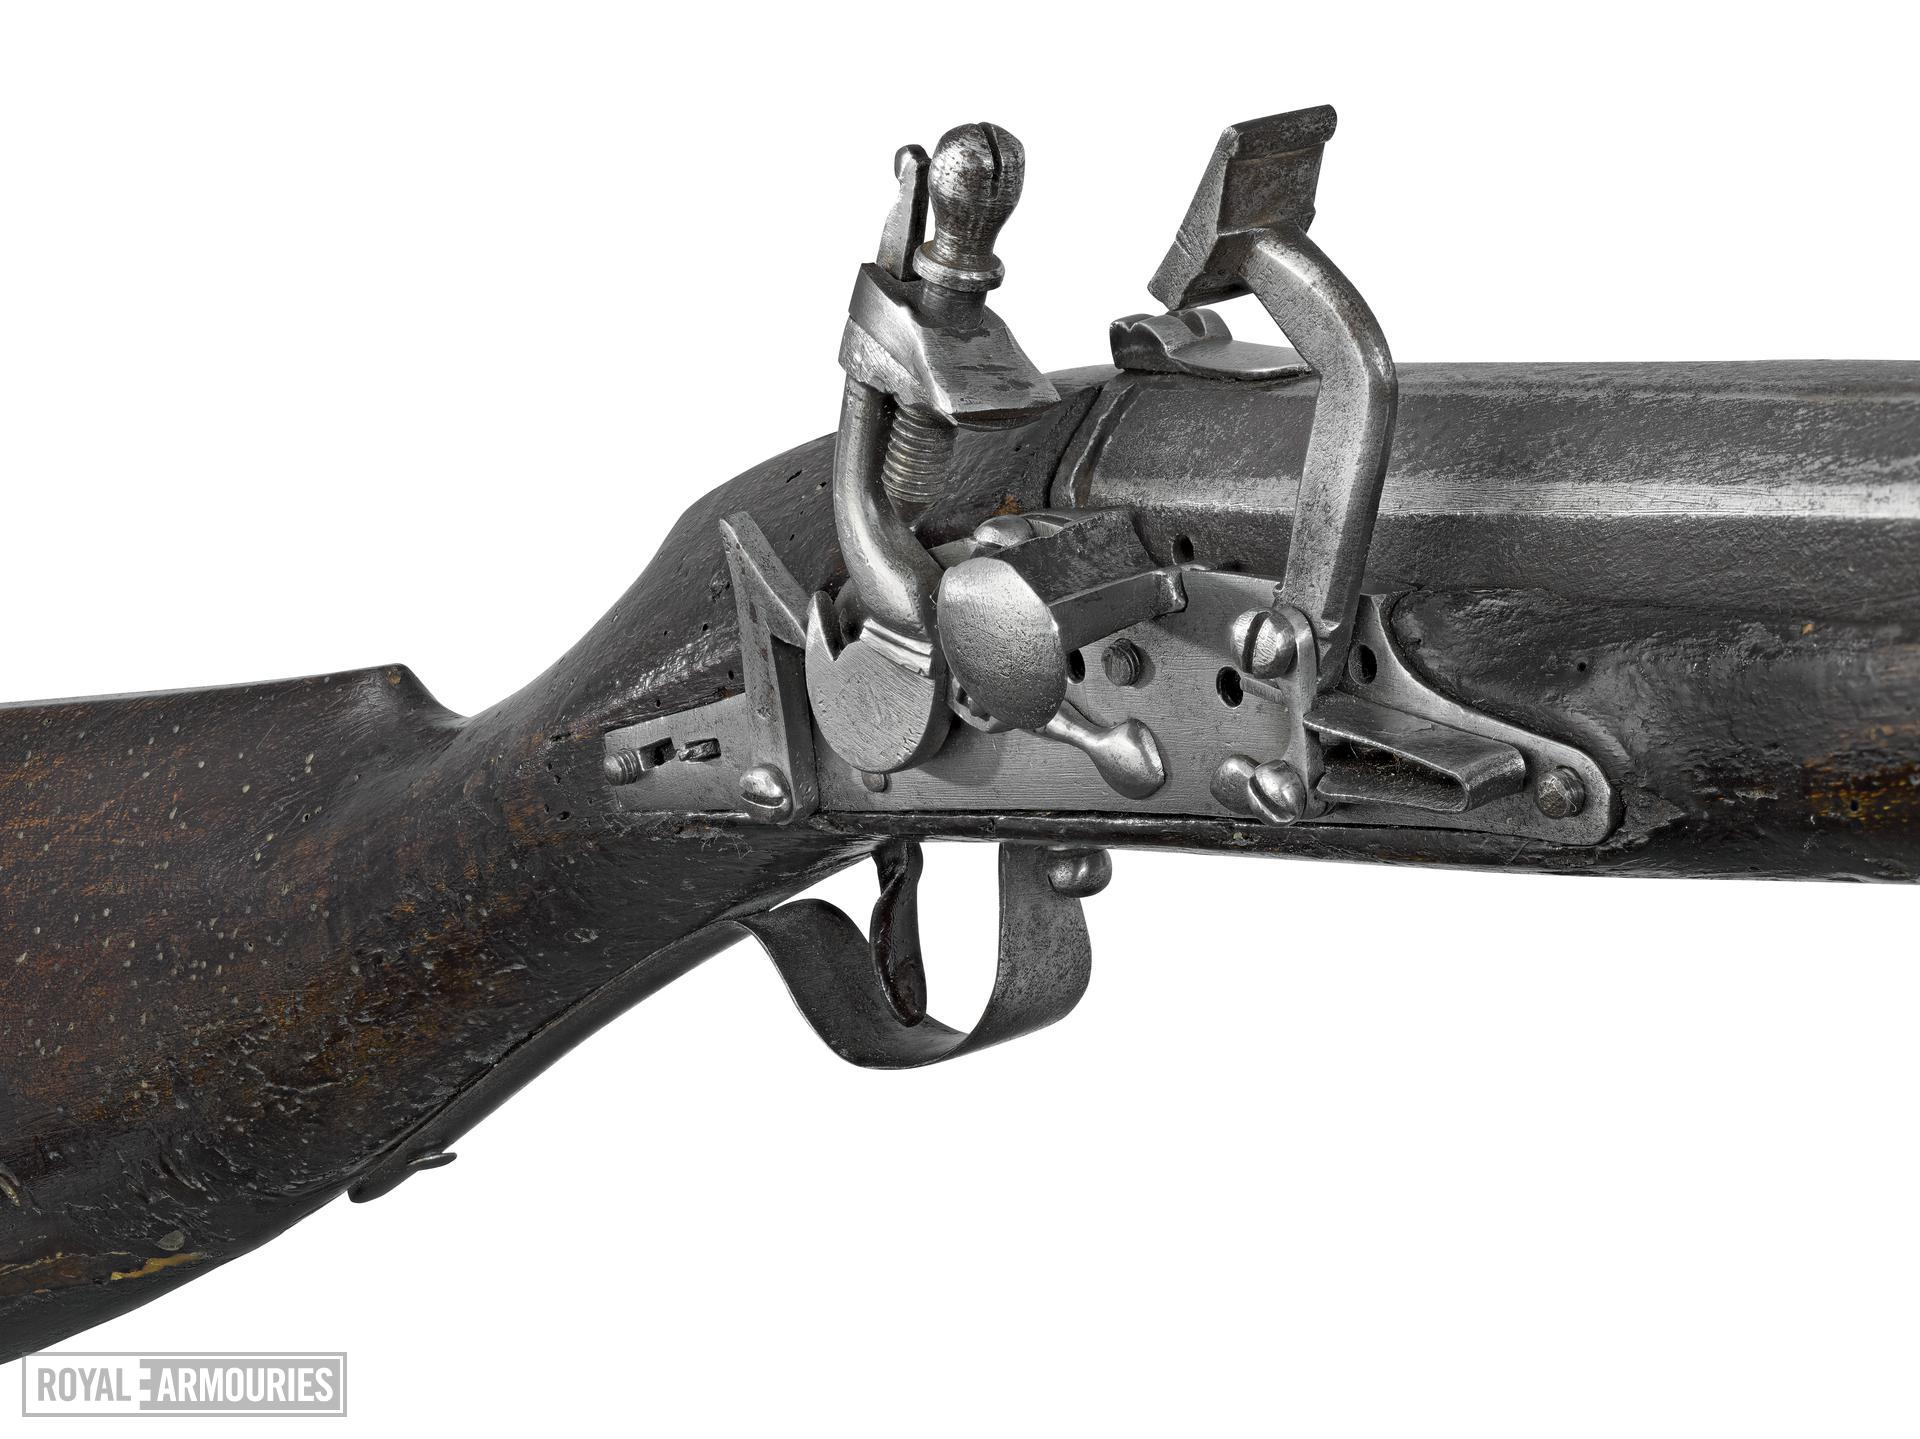 Flintlock muzzle-loading musket, Littlecote collection. XII.5392